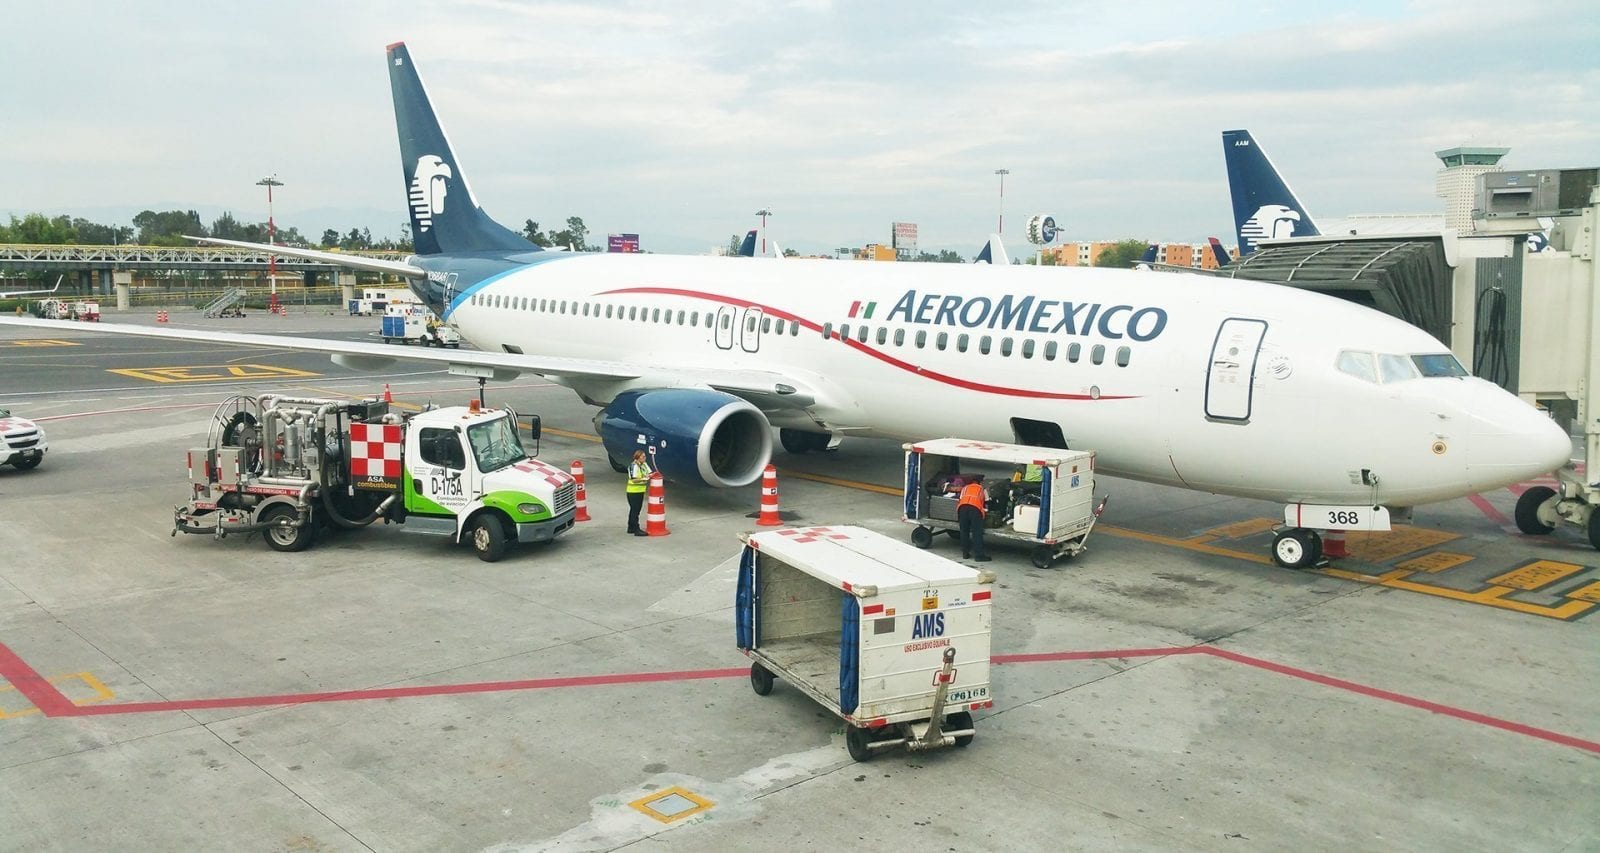 Aeromexico Boeing 737 at gate at Mexico City Airport